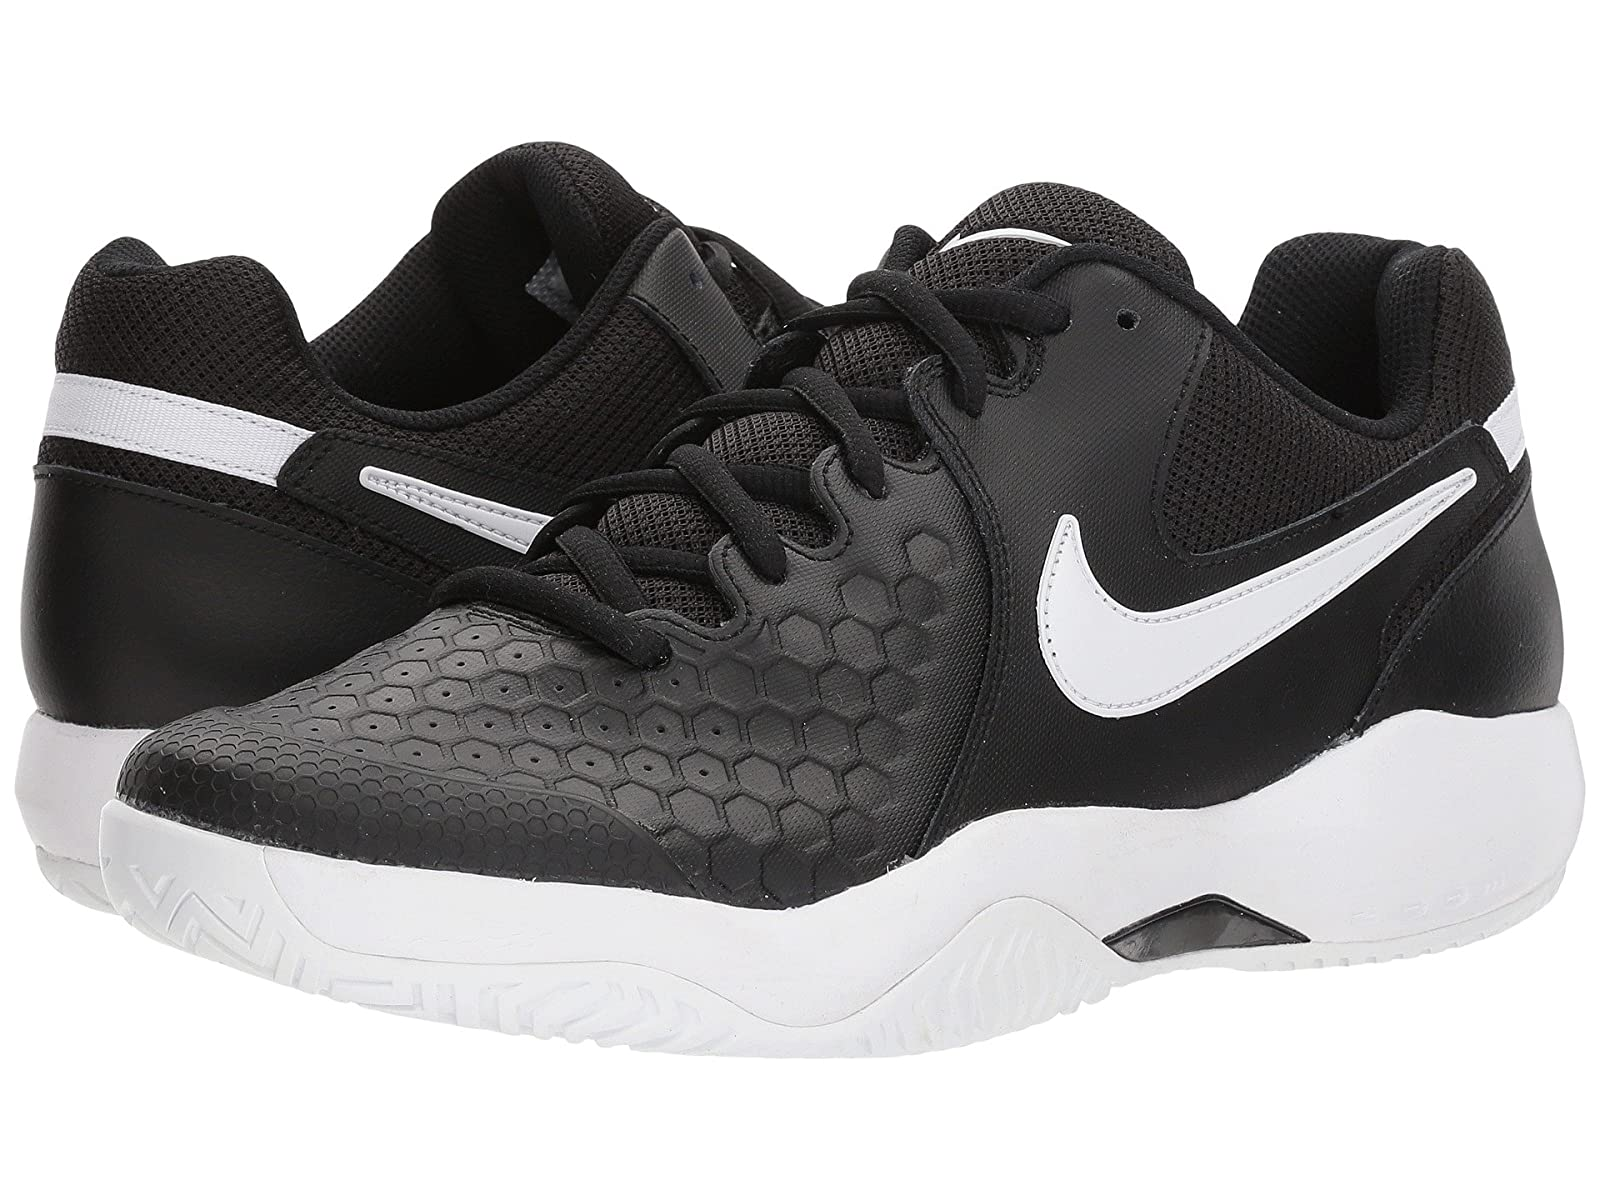 Men's/Women's:Nike Men's/Women's:Nike Men's/Women's:Nike Air Zoom Resistance:color eye-catching 2168c0